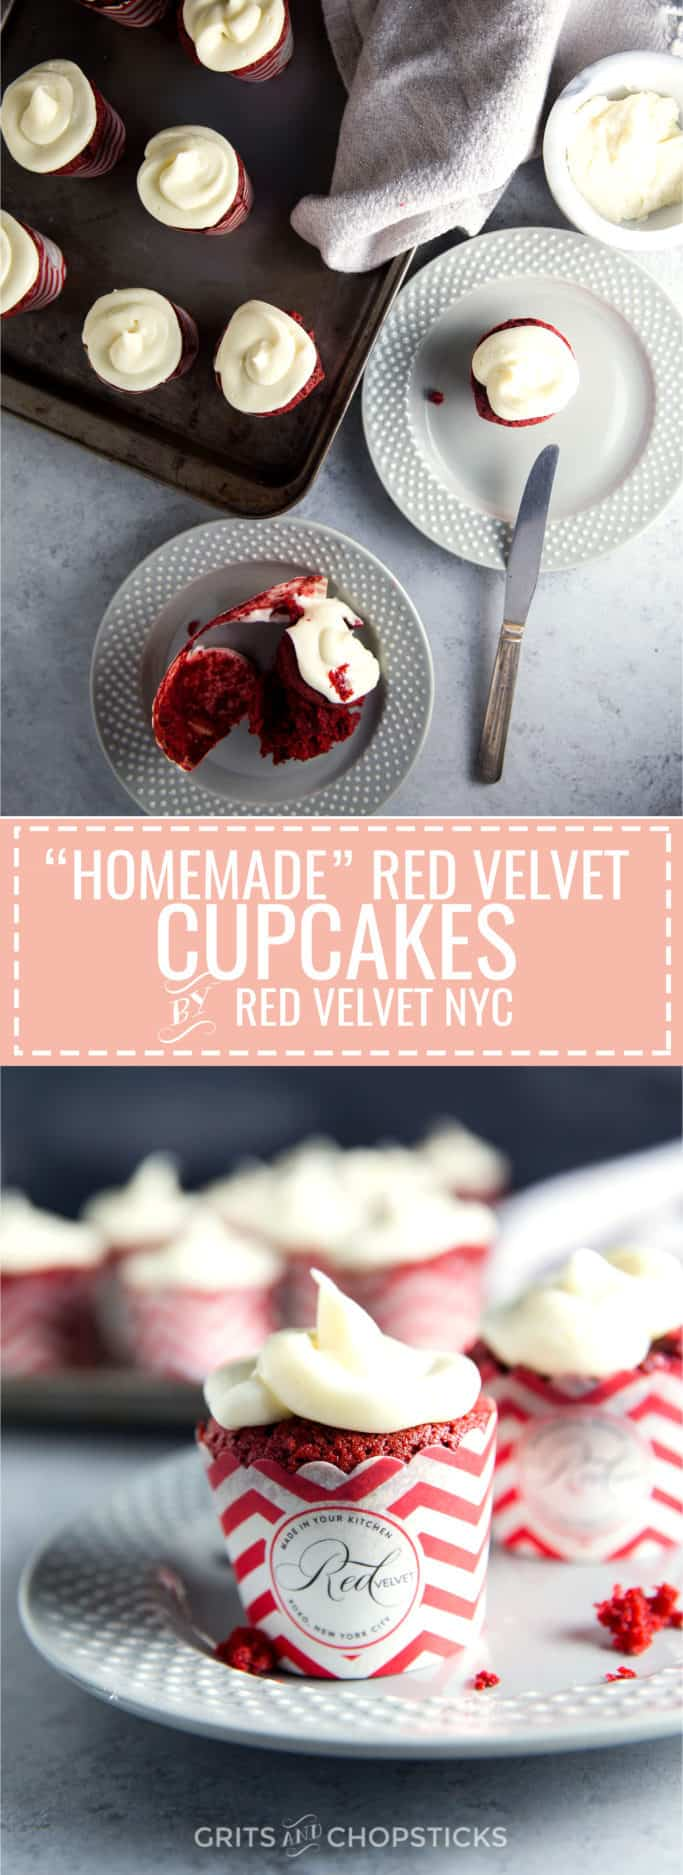 Red Velvet NYC is a dessert delivery service that delivers pre-measured ingredients to your door for made-from-scratch delicious desserts!